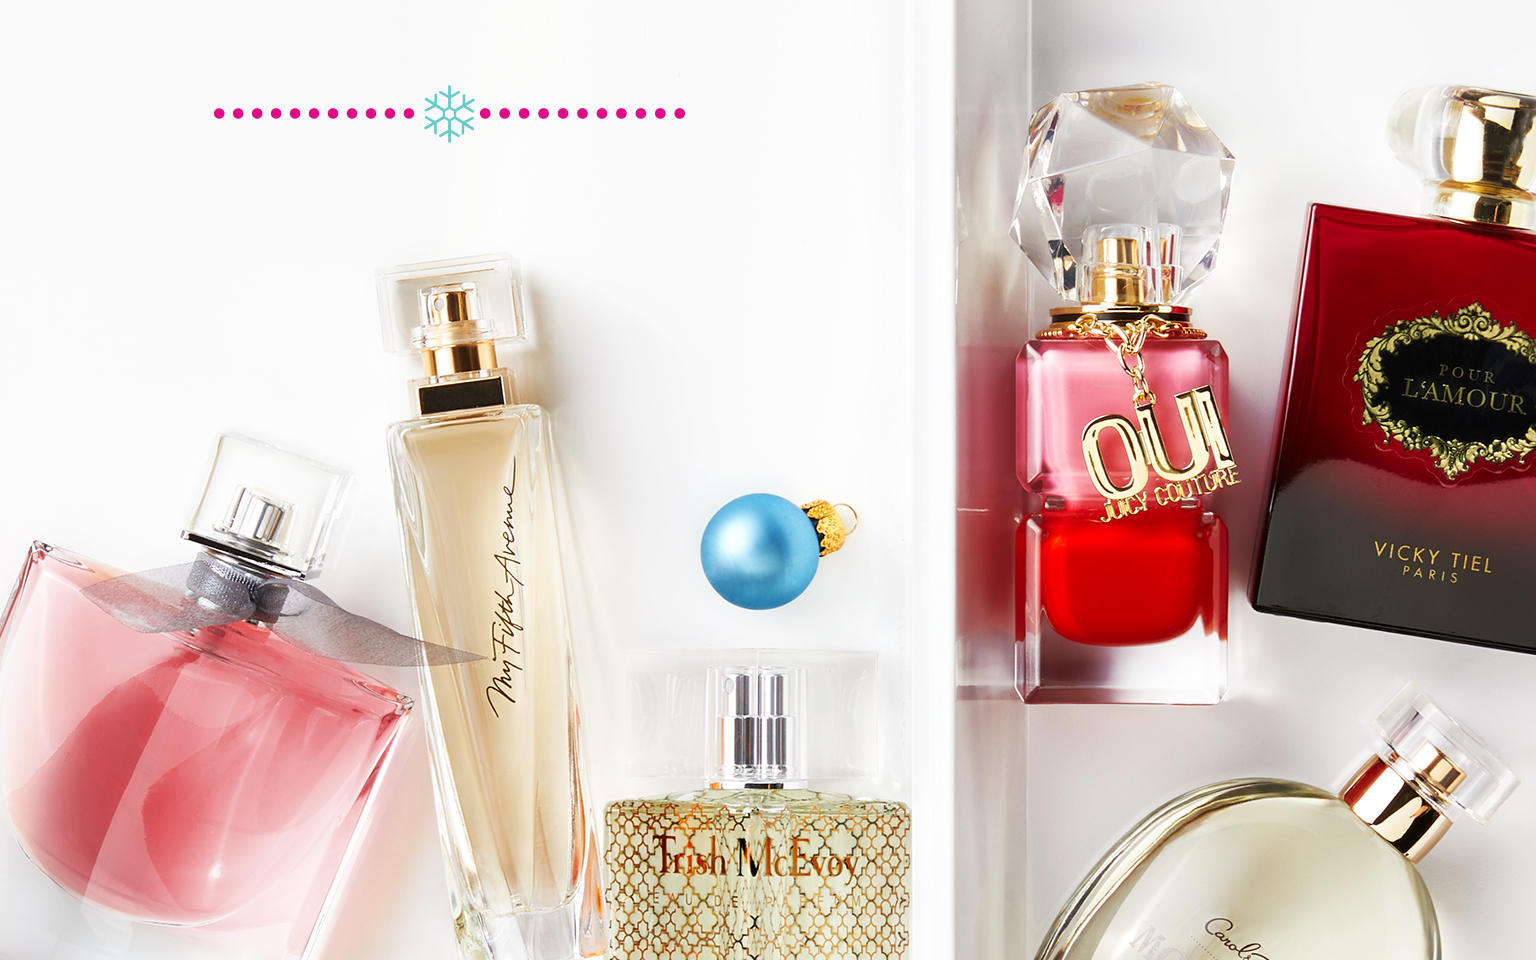 A variety of fragrances